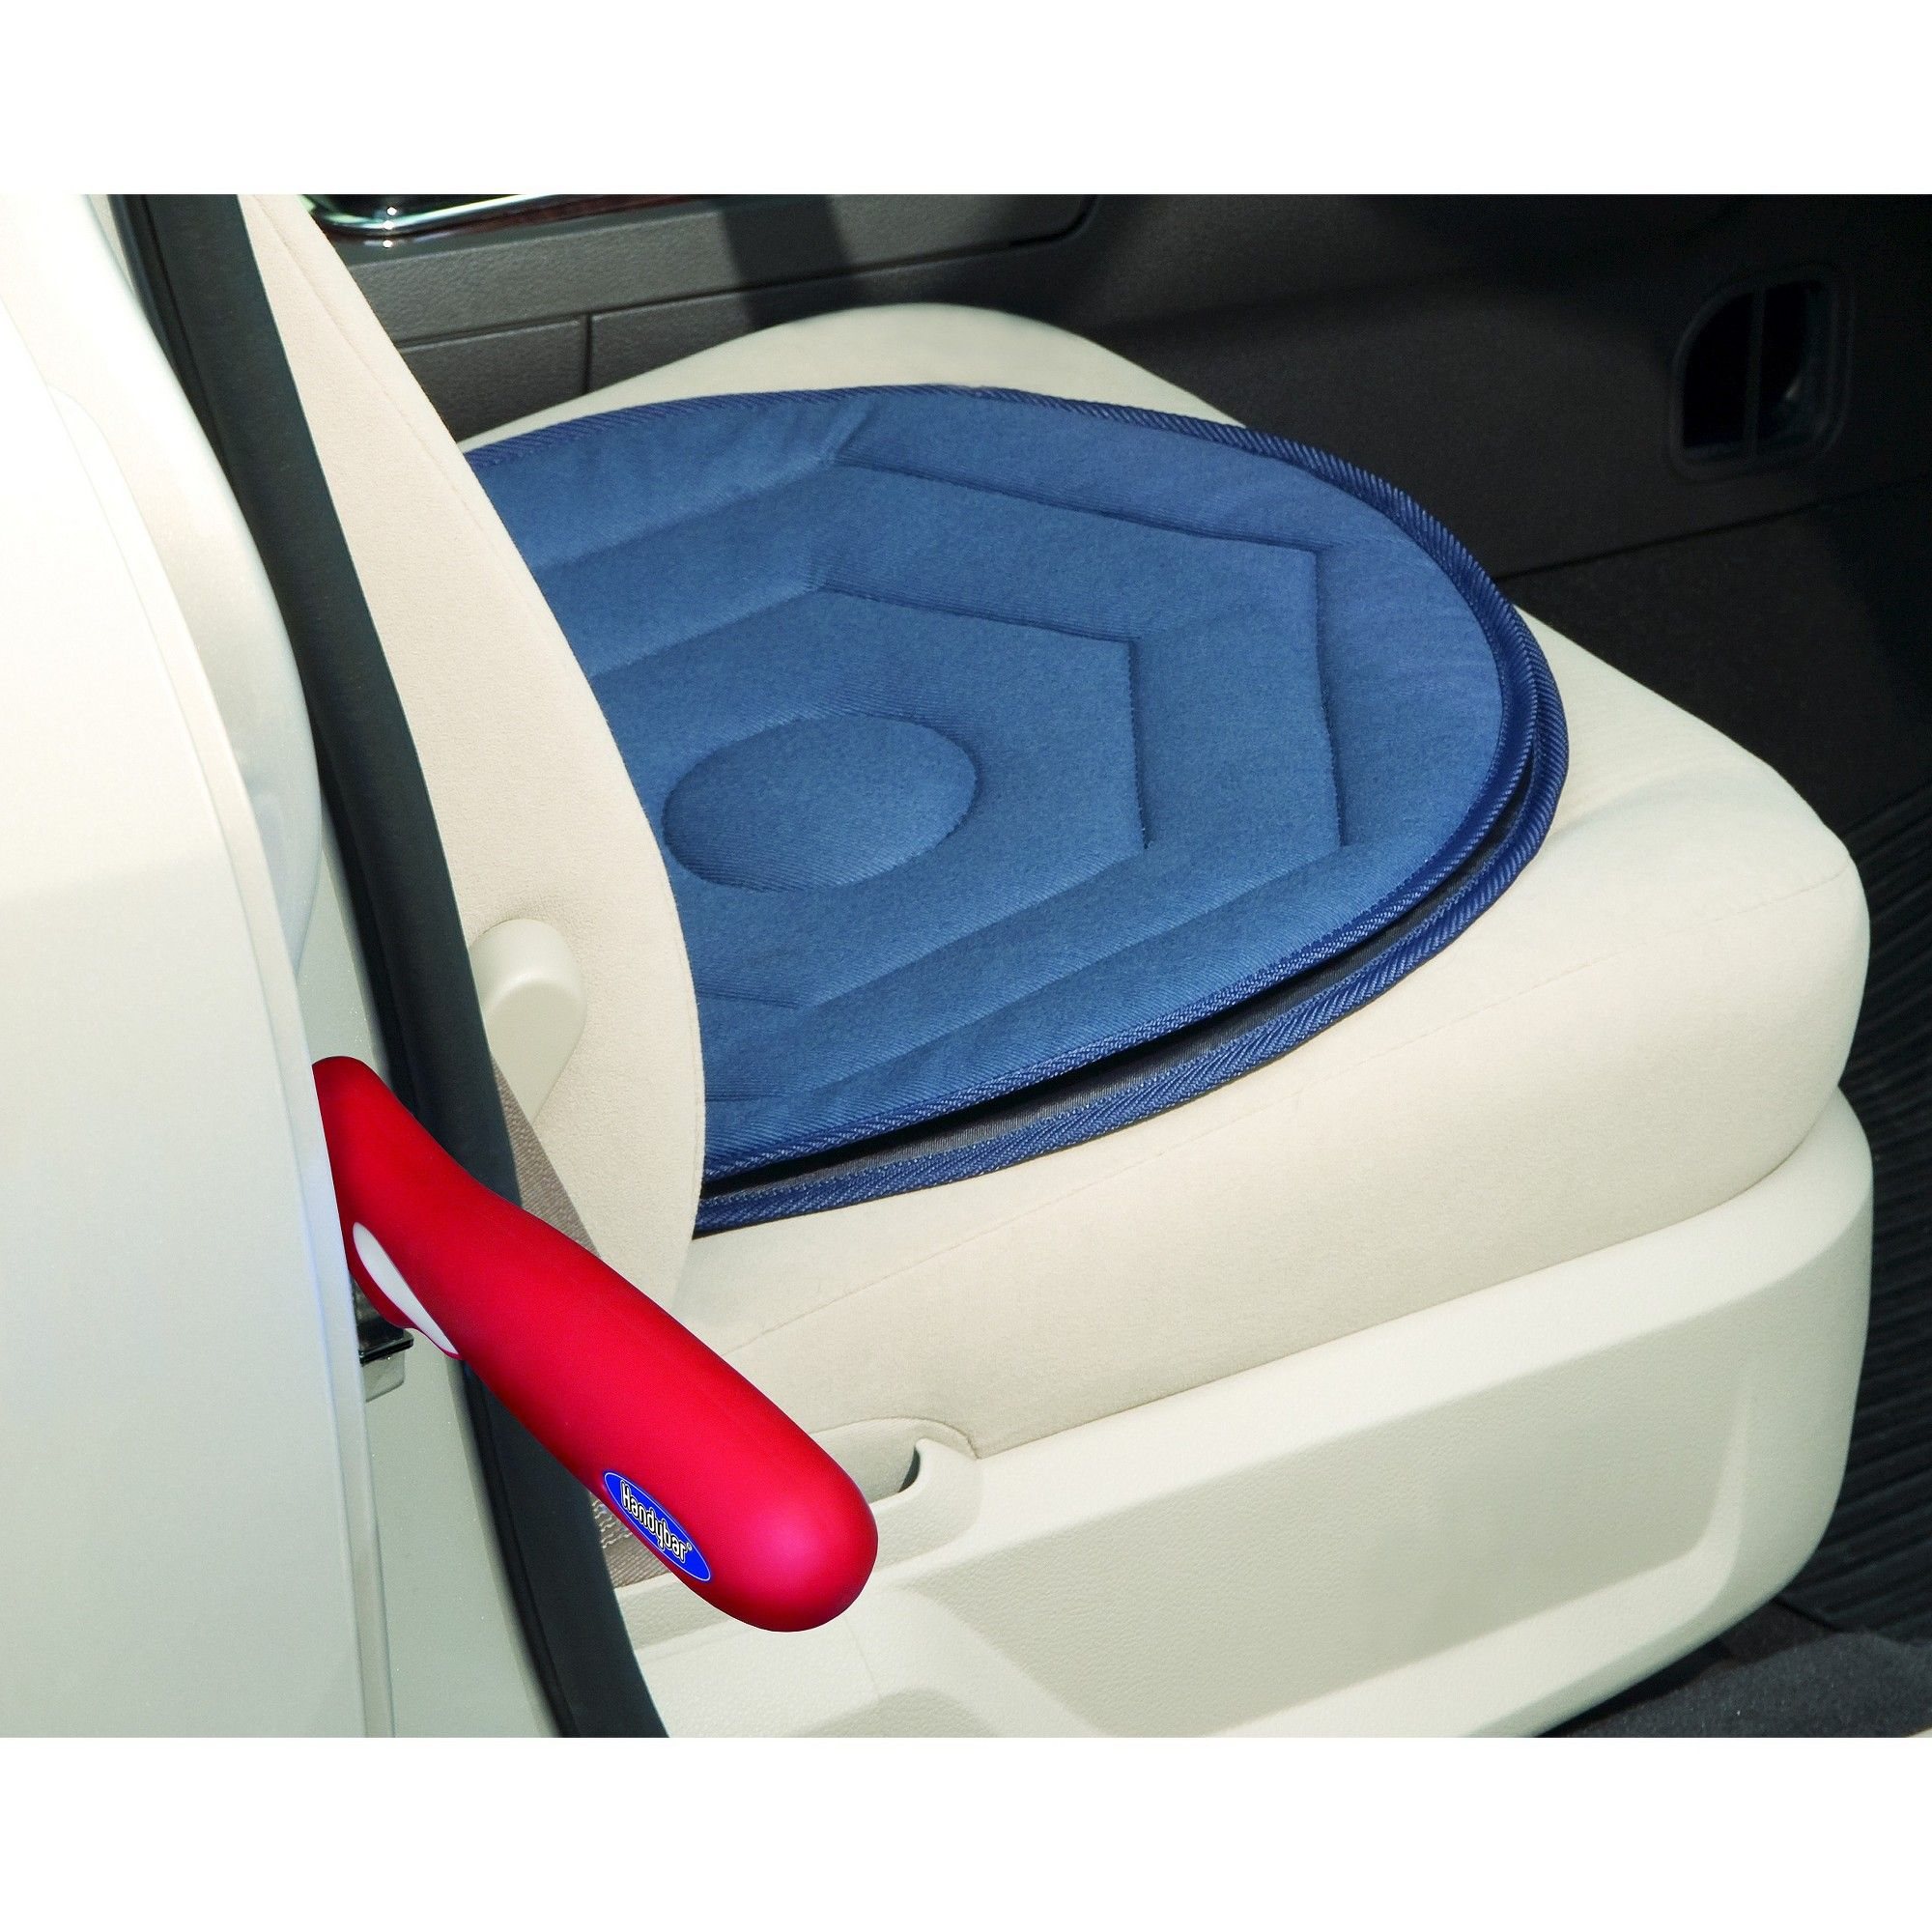 Stander Automobility Solution Swivel seating, Stander